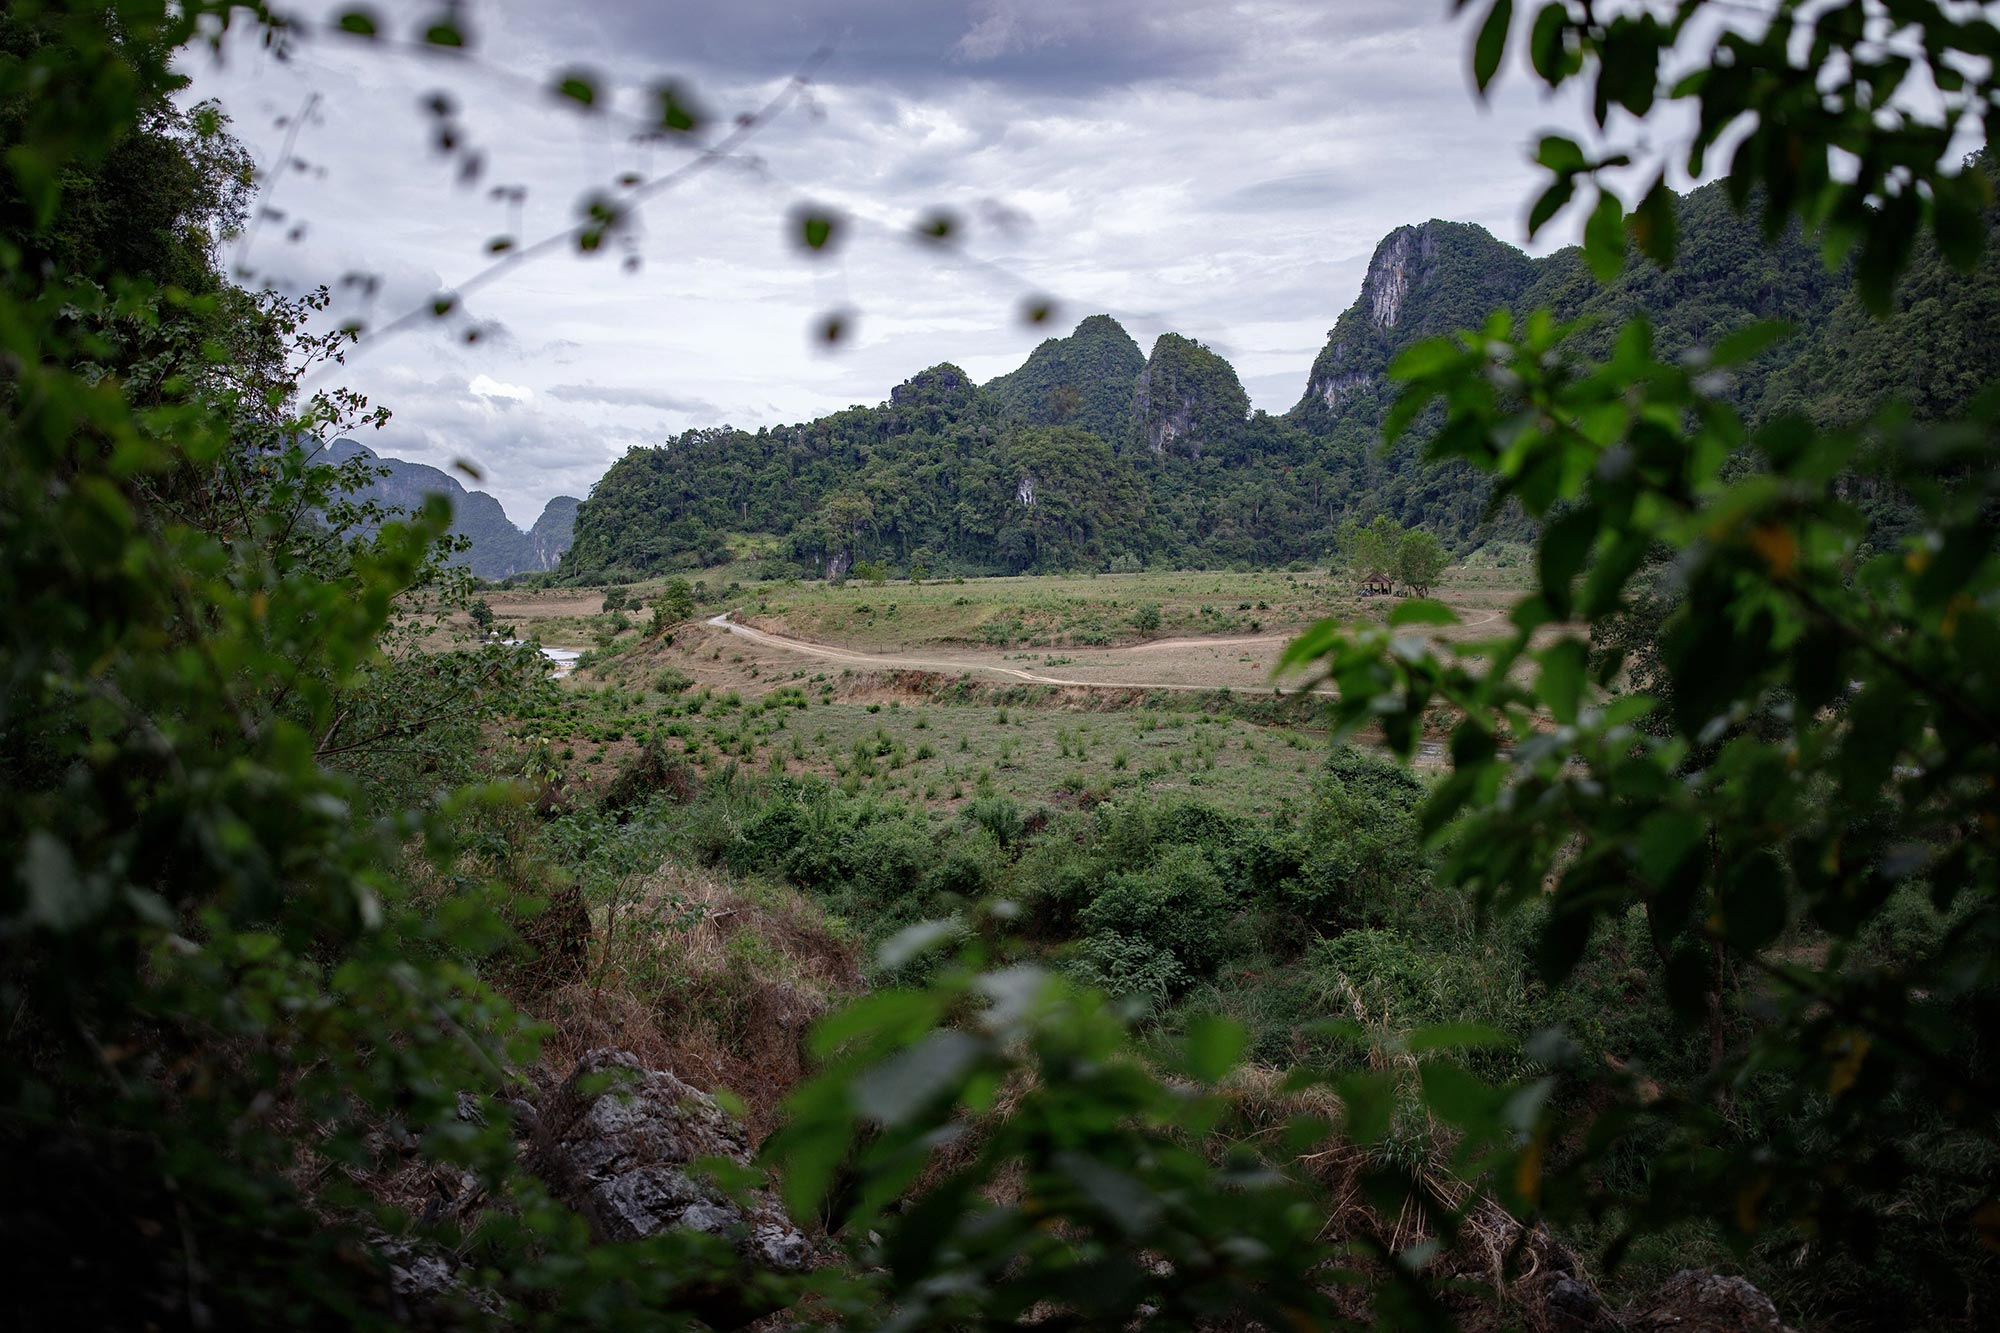 The picturesque landscape surrounding the village of Tan Hoa, where the Tú Làn cave system adventure tour begins